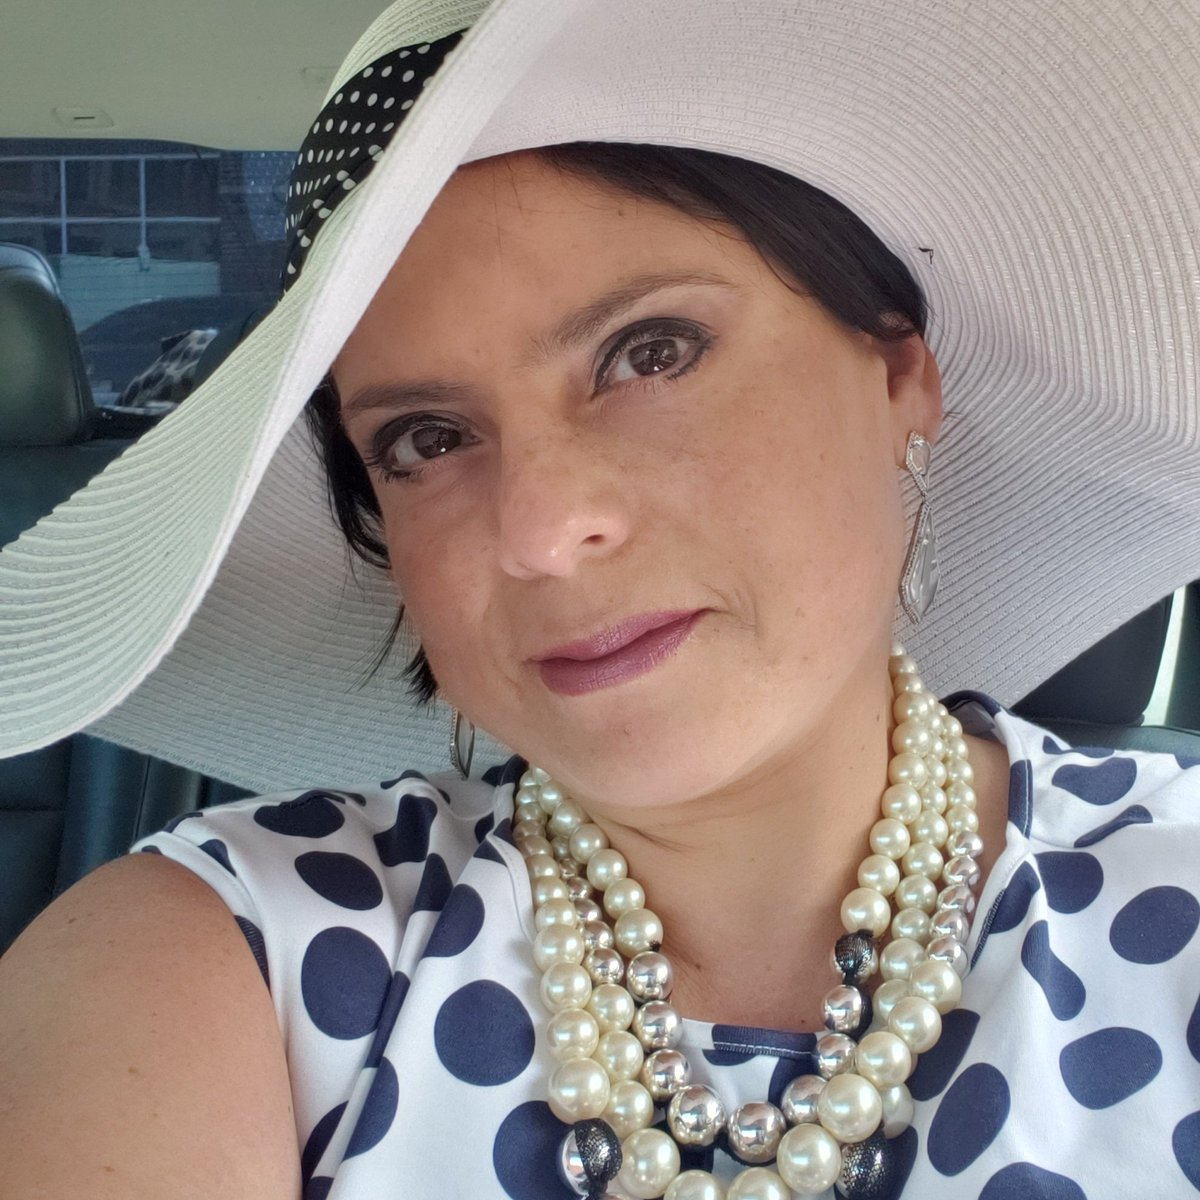 It's #nationalselfieday 🤳  so I decide to hop on the #bandwagon and #post this #picture from when I attended a #kentuckyderby party with my #mckinneywomenentrepreneurs girlfriends back in #may 🐎👭🐴 👒Can you tell by the hat??? 🤣 #me #SelfieDay #selfie #FridayFeeling #friday